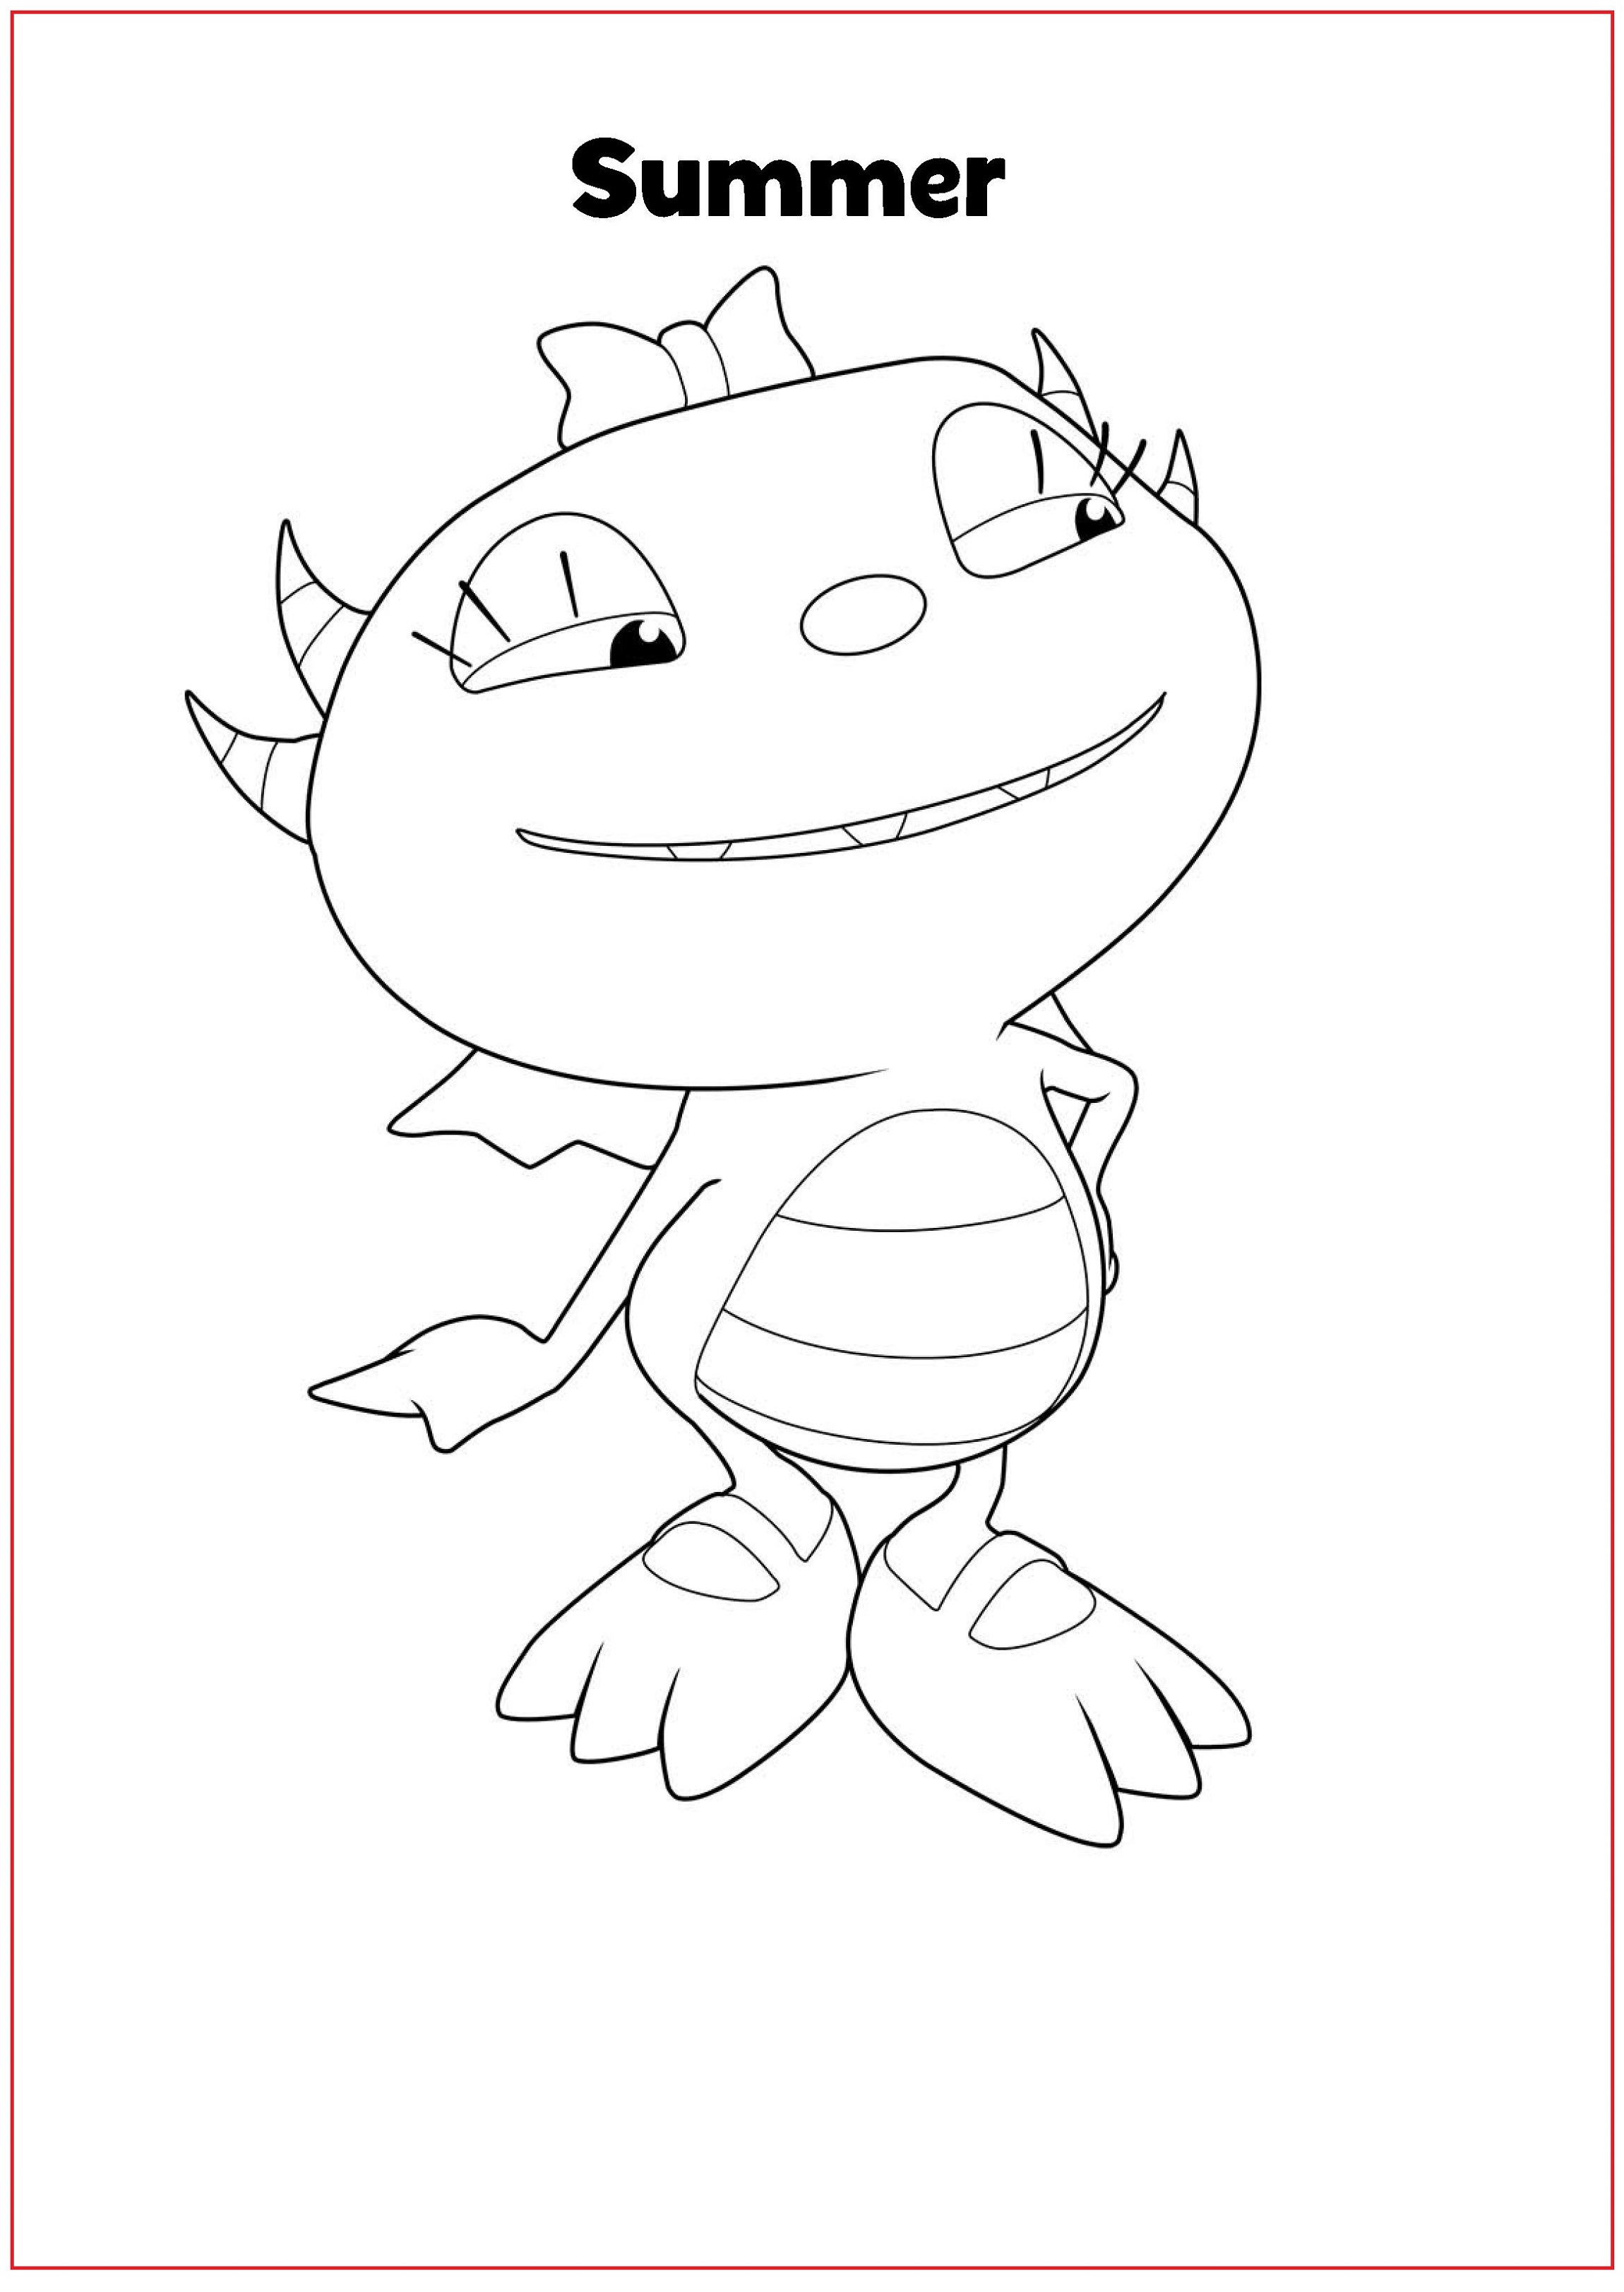 Henry Danger Coloring Pages Summer